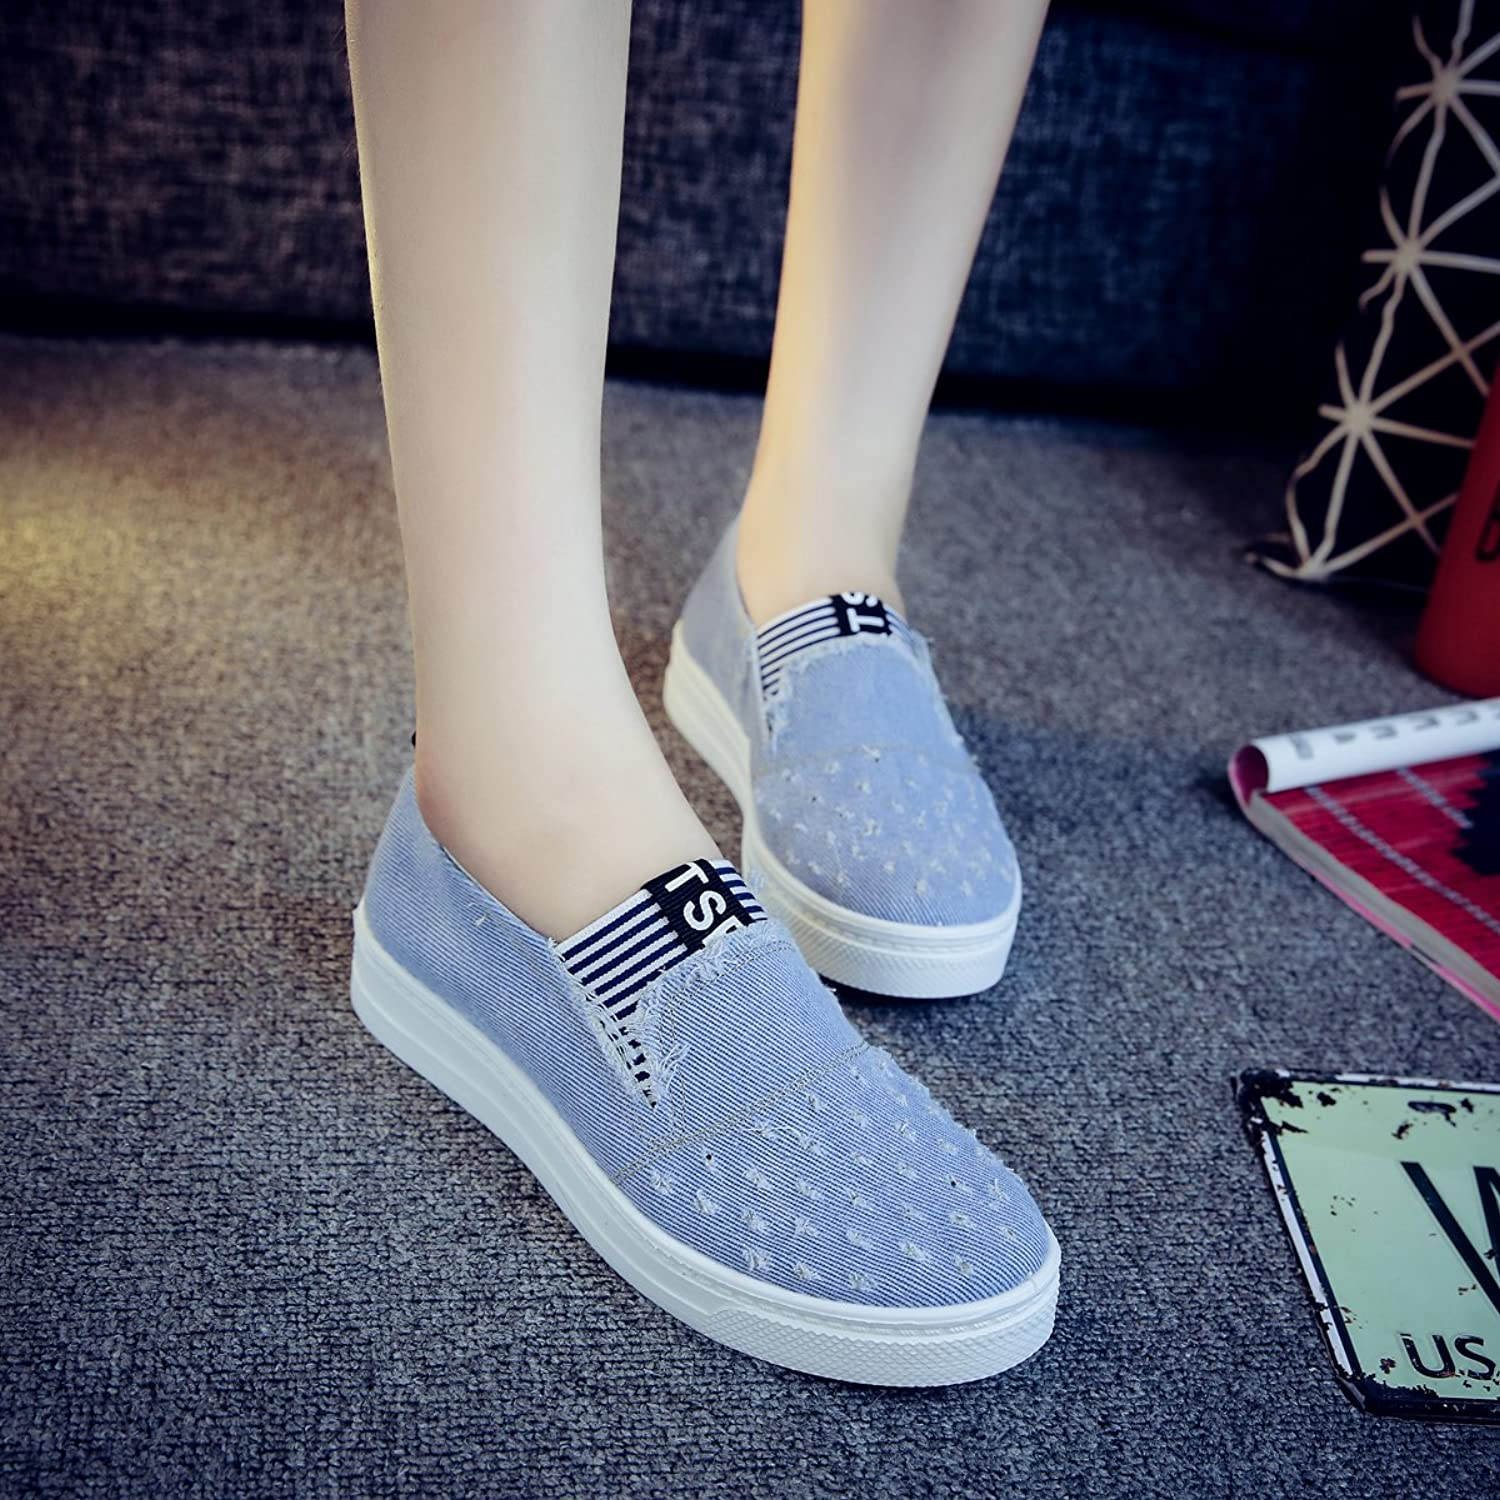 Brighty-U Durable Fashion Women's Jeans shoes Flats Fashion Casual Denim shoes Soft Soles Students Canvas shoes Breathable Orientpostmark